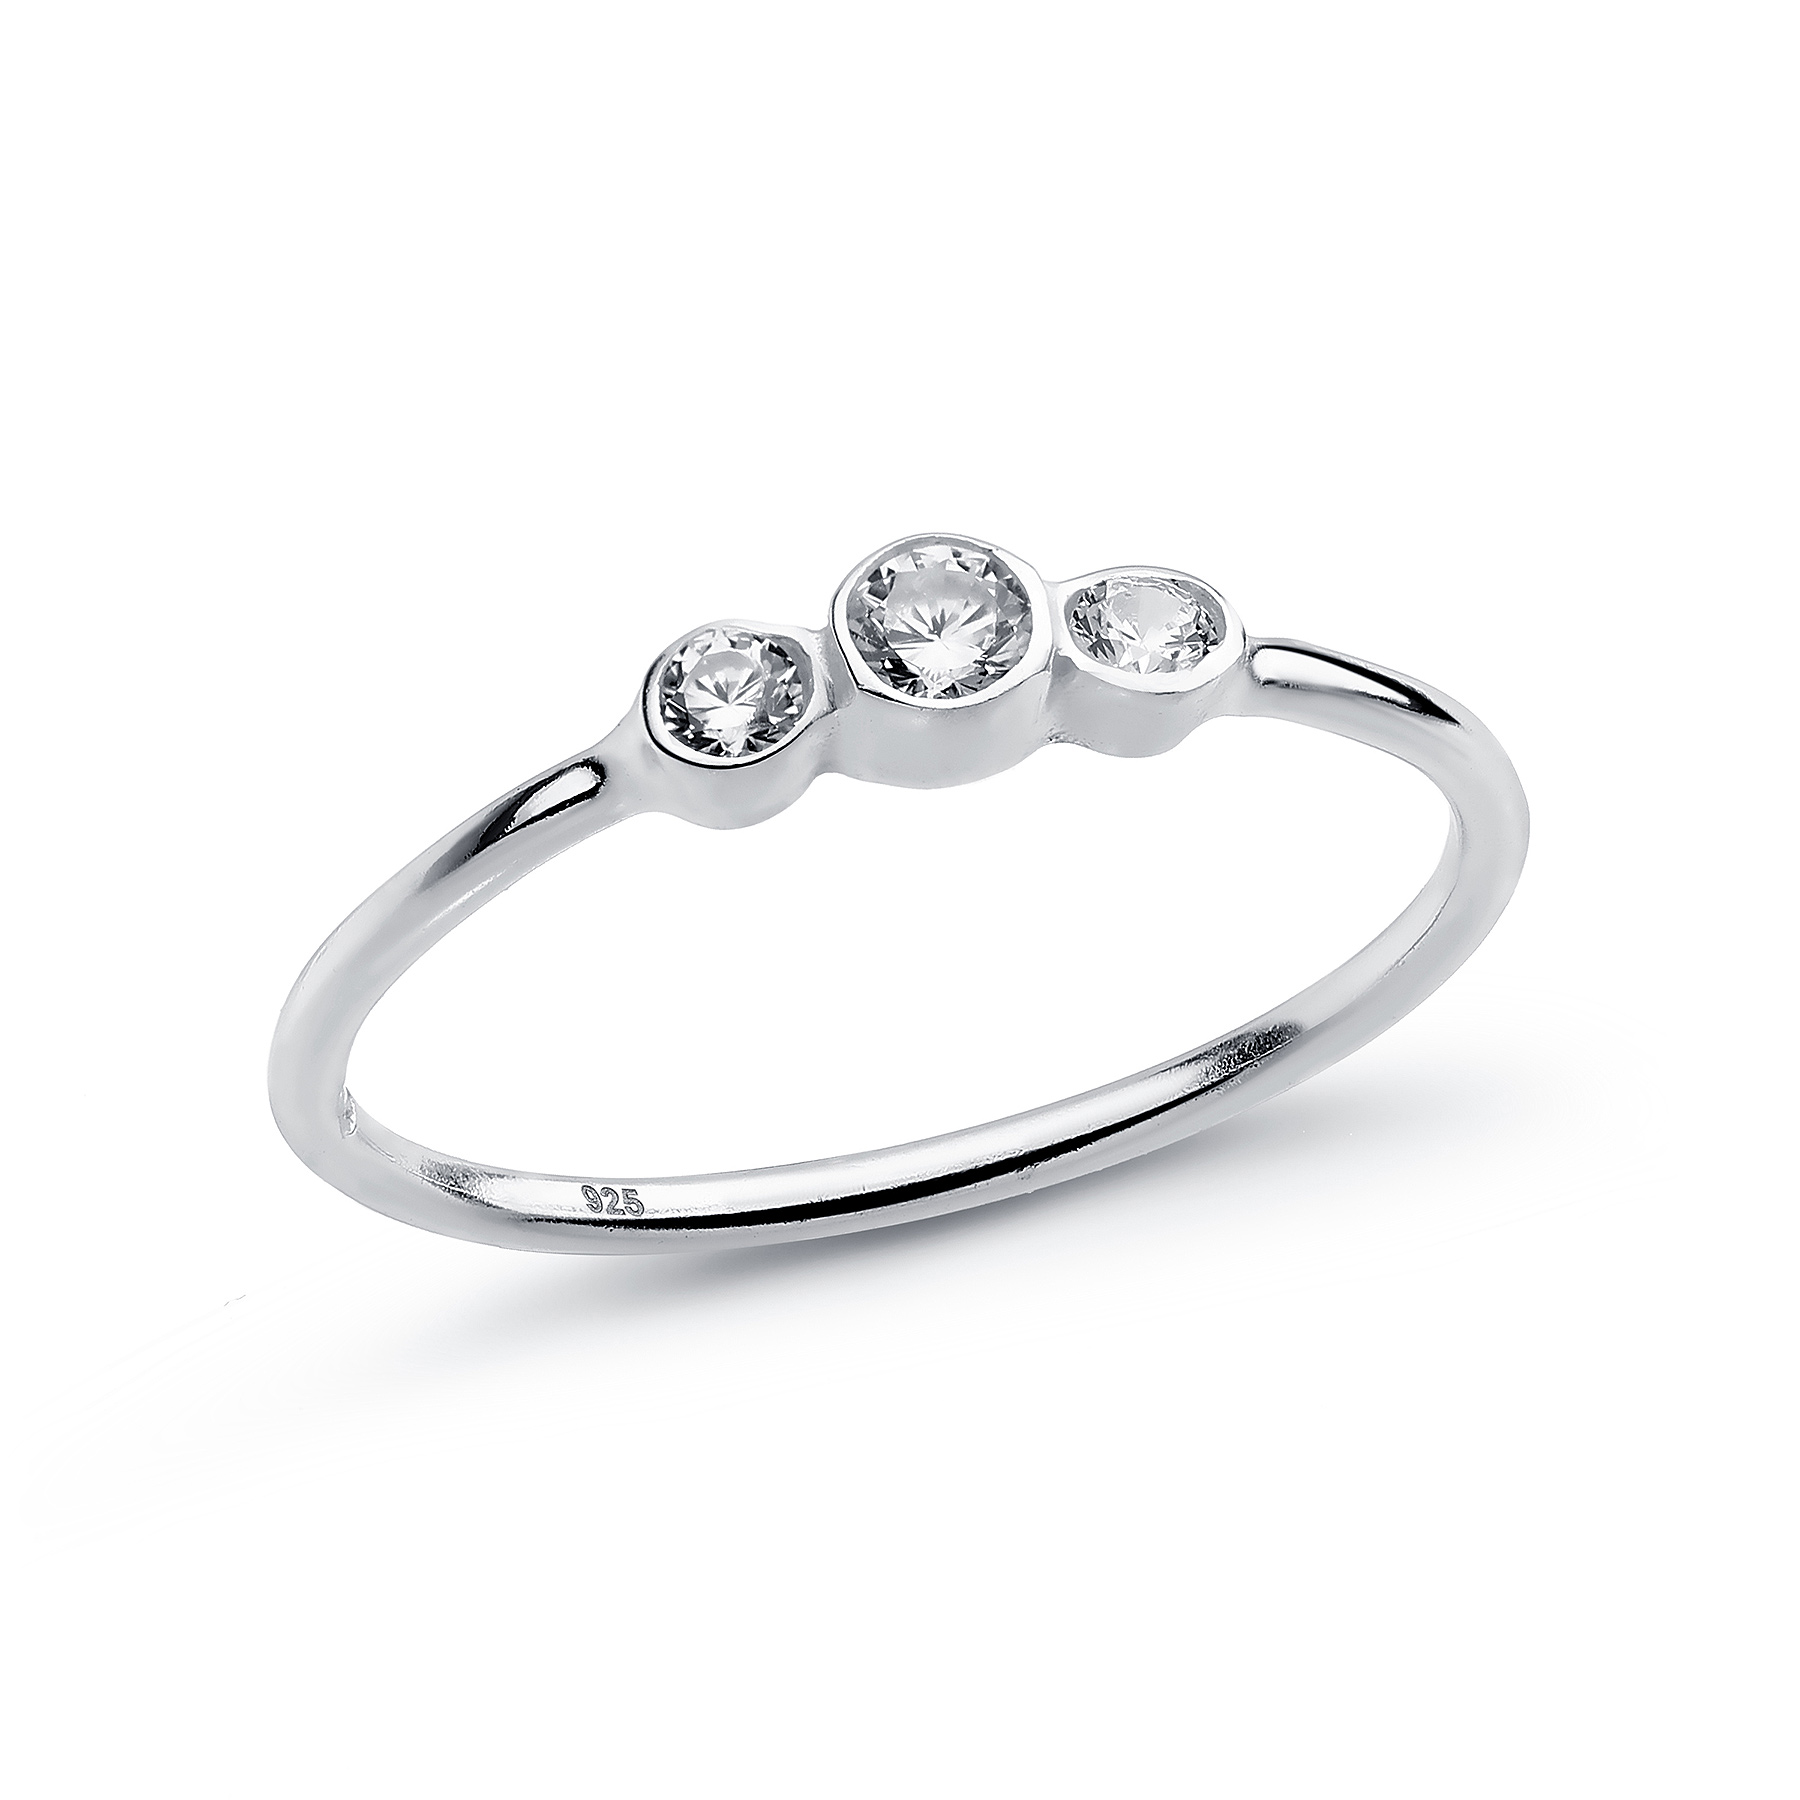 701-18774 - 925 Sterling Silver Ring Decorated with CZ Simulated Diamonds, Plated with Pure Silver